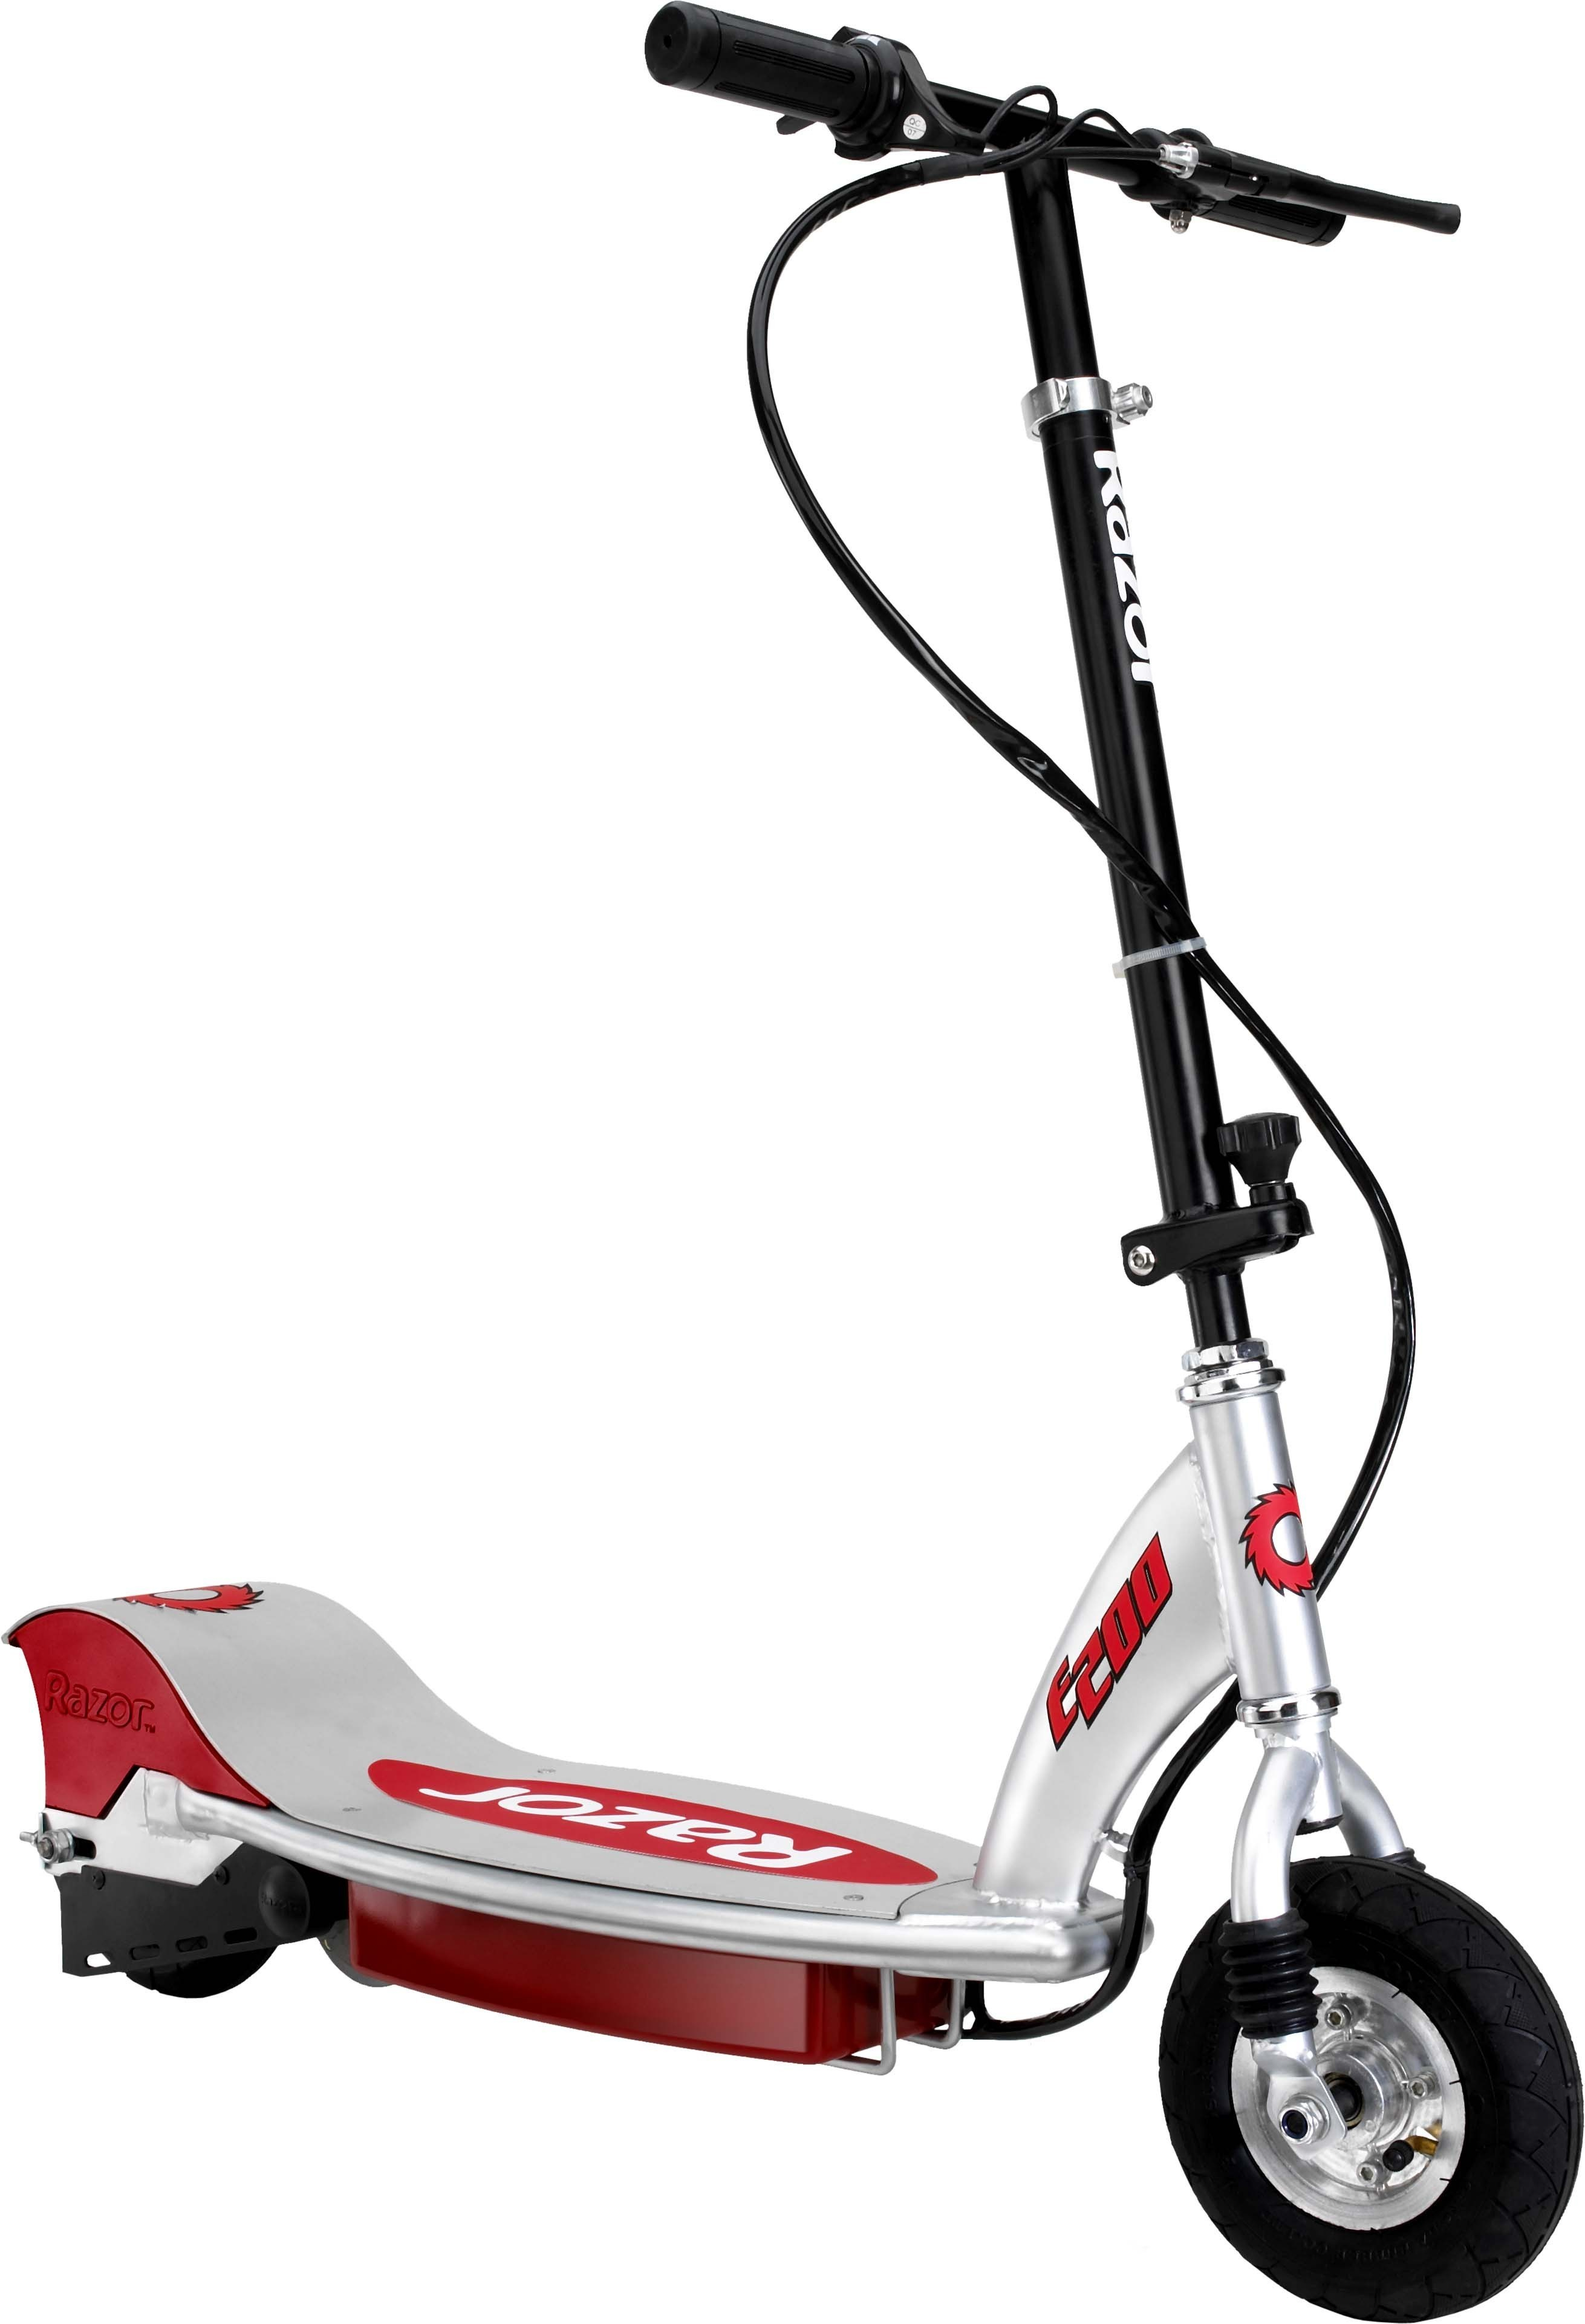 Cpsc Razor Usa Announce Recall Of Electric Scooters